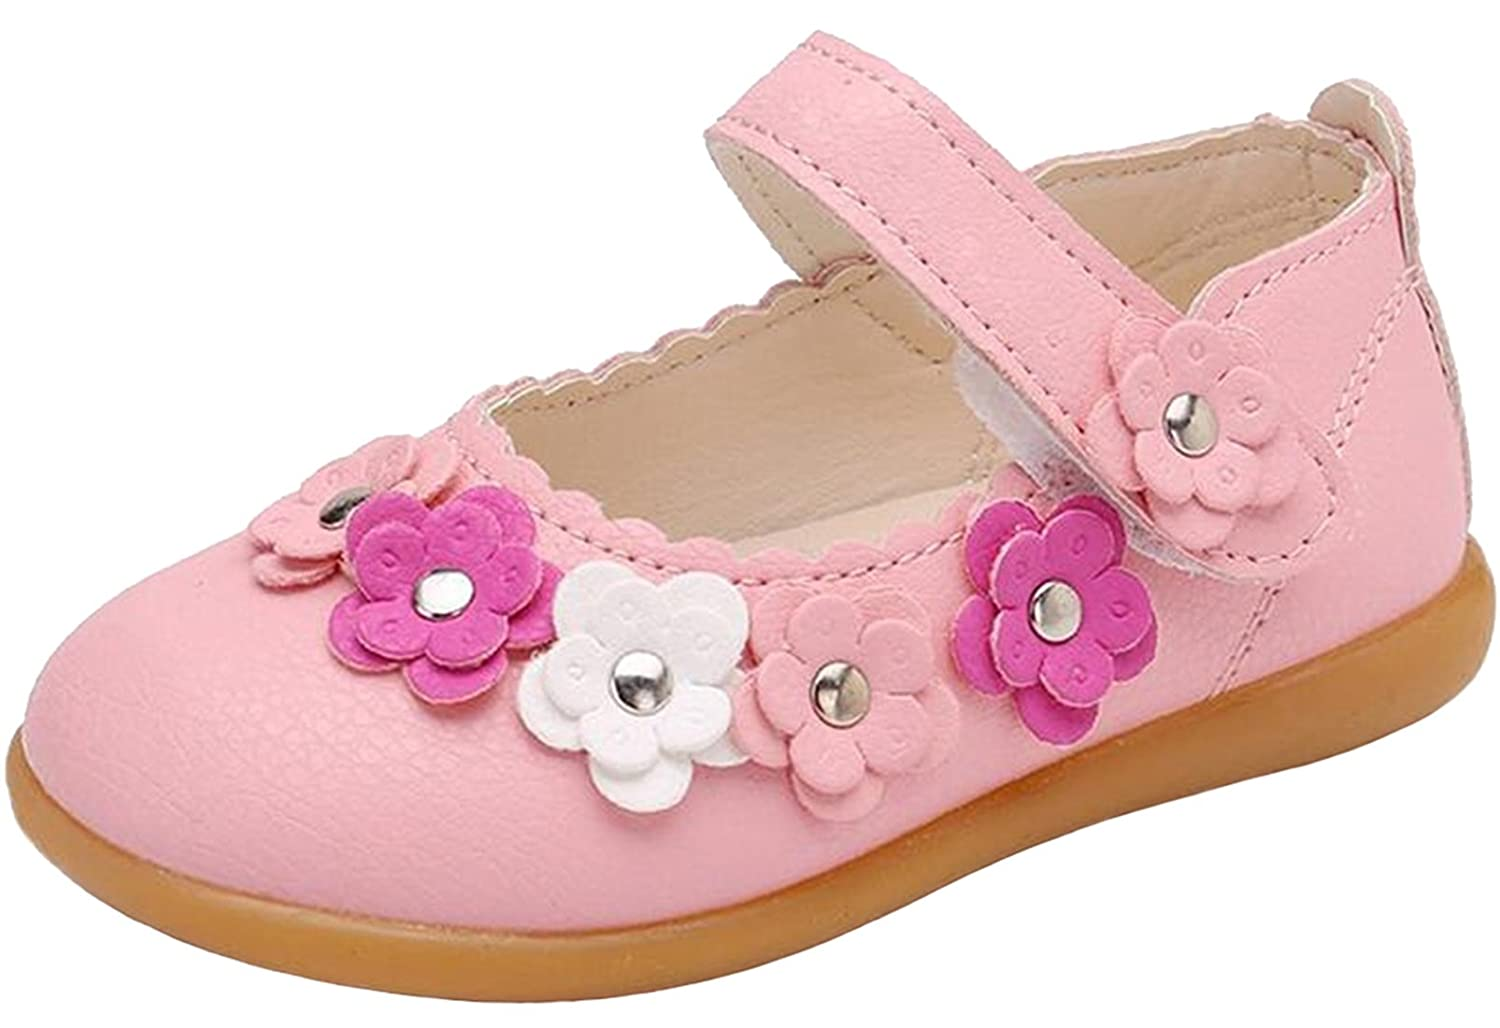 PPXID Girl's Princess Flat Mary Jane Flowers Dress Oxford Shoes(Toddler/Little Kid)